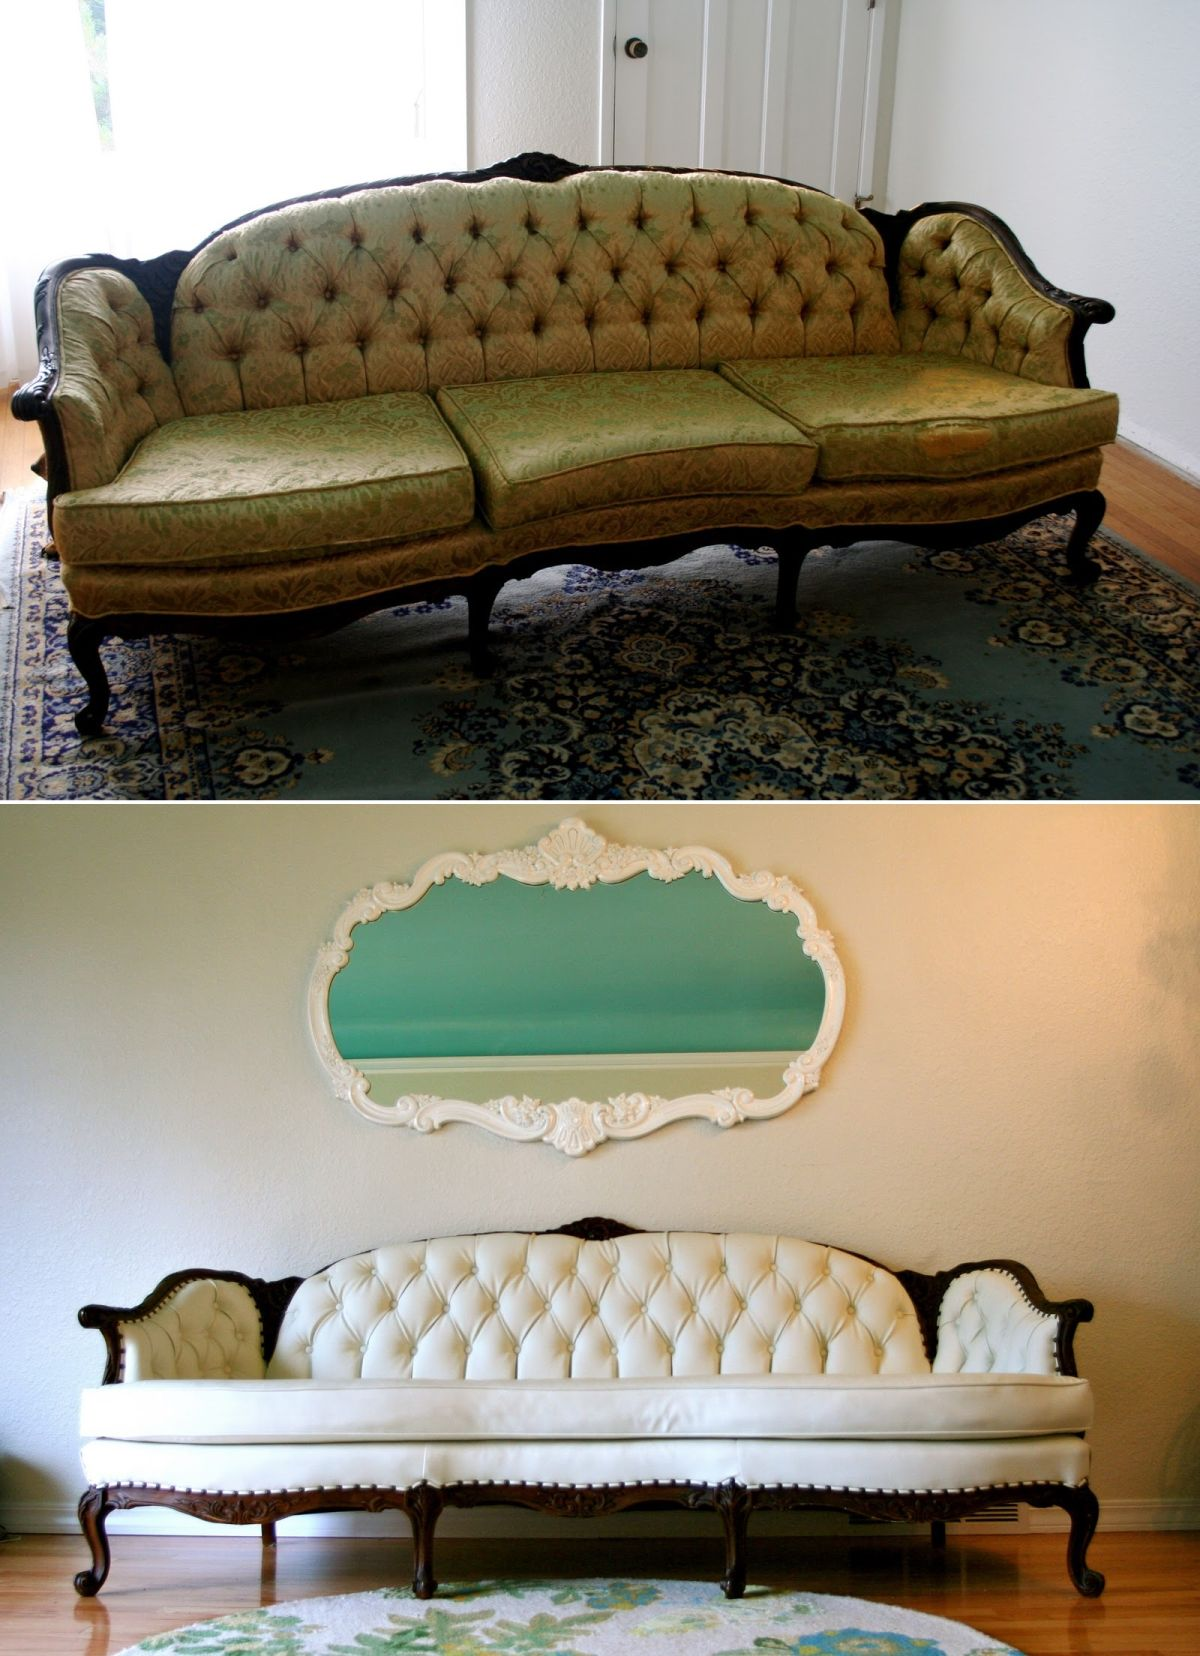 Where to put an old sofa 42